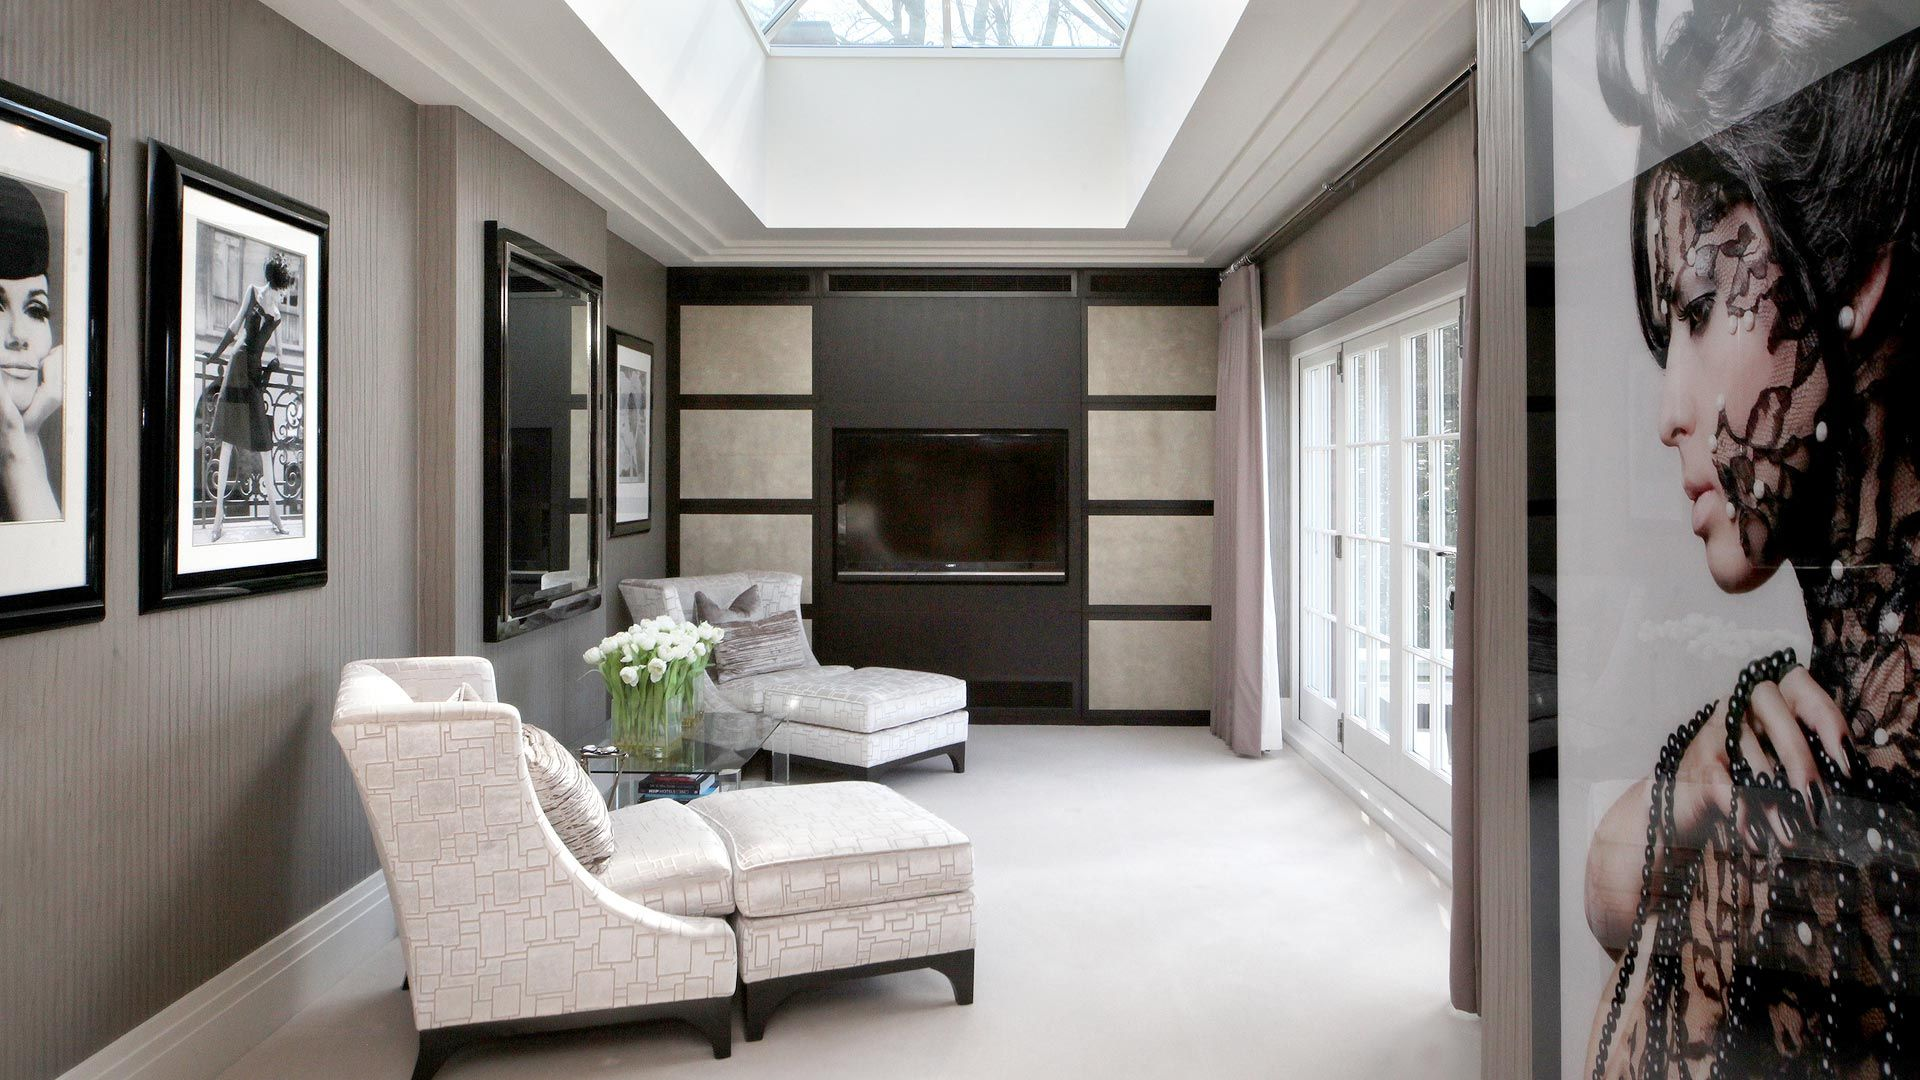 South road st george   hill uk project interior design portfolio house interiors are  london based company with showroom in also rh pinterest